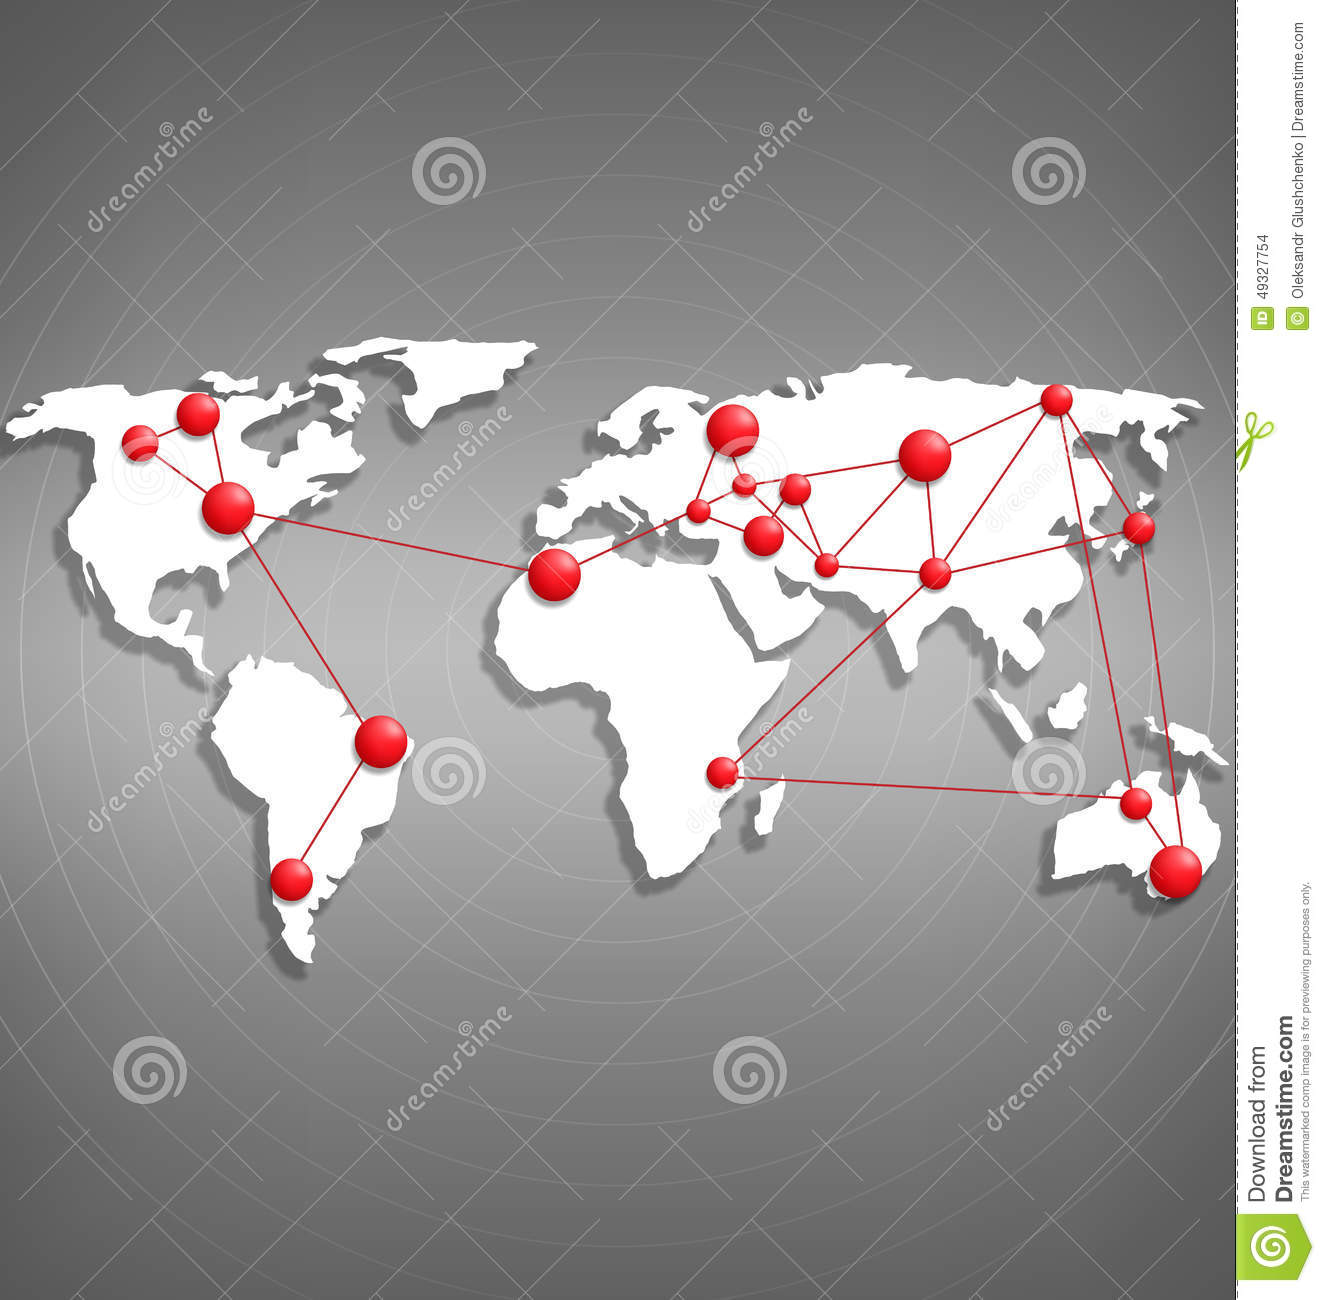 World map with red point marks on grayscale stock vector world map with red point marks on grayscale gumiabroncs Image collections